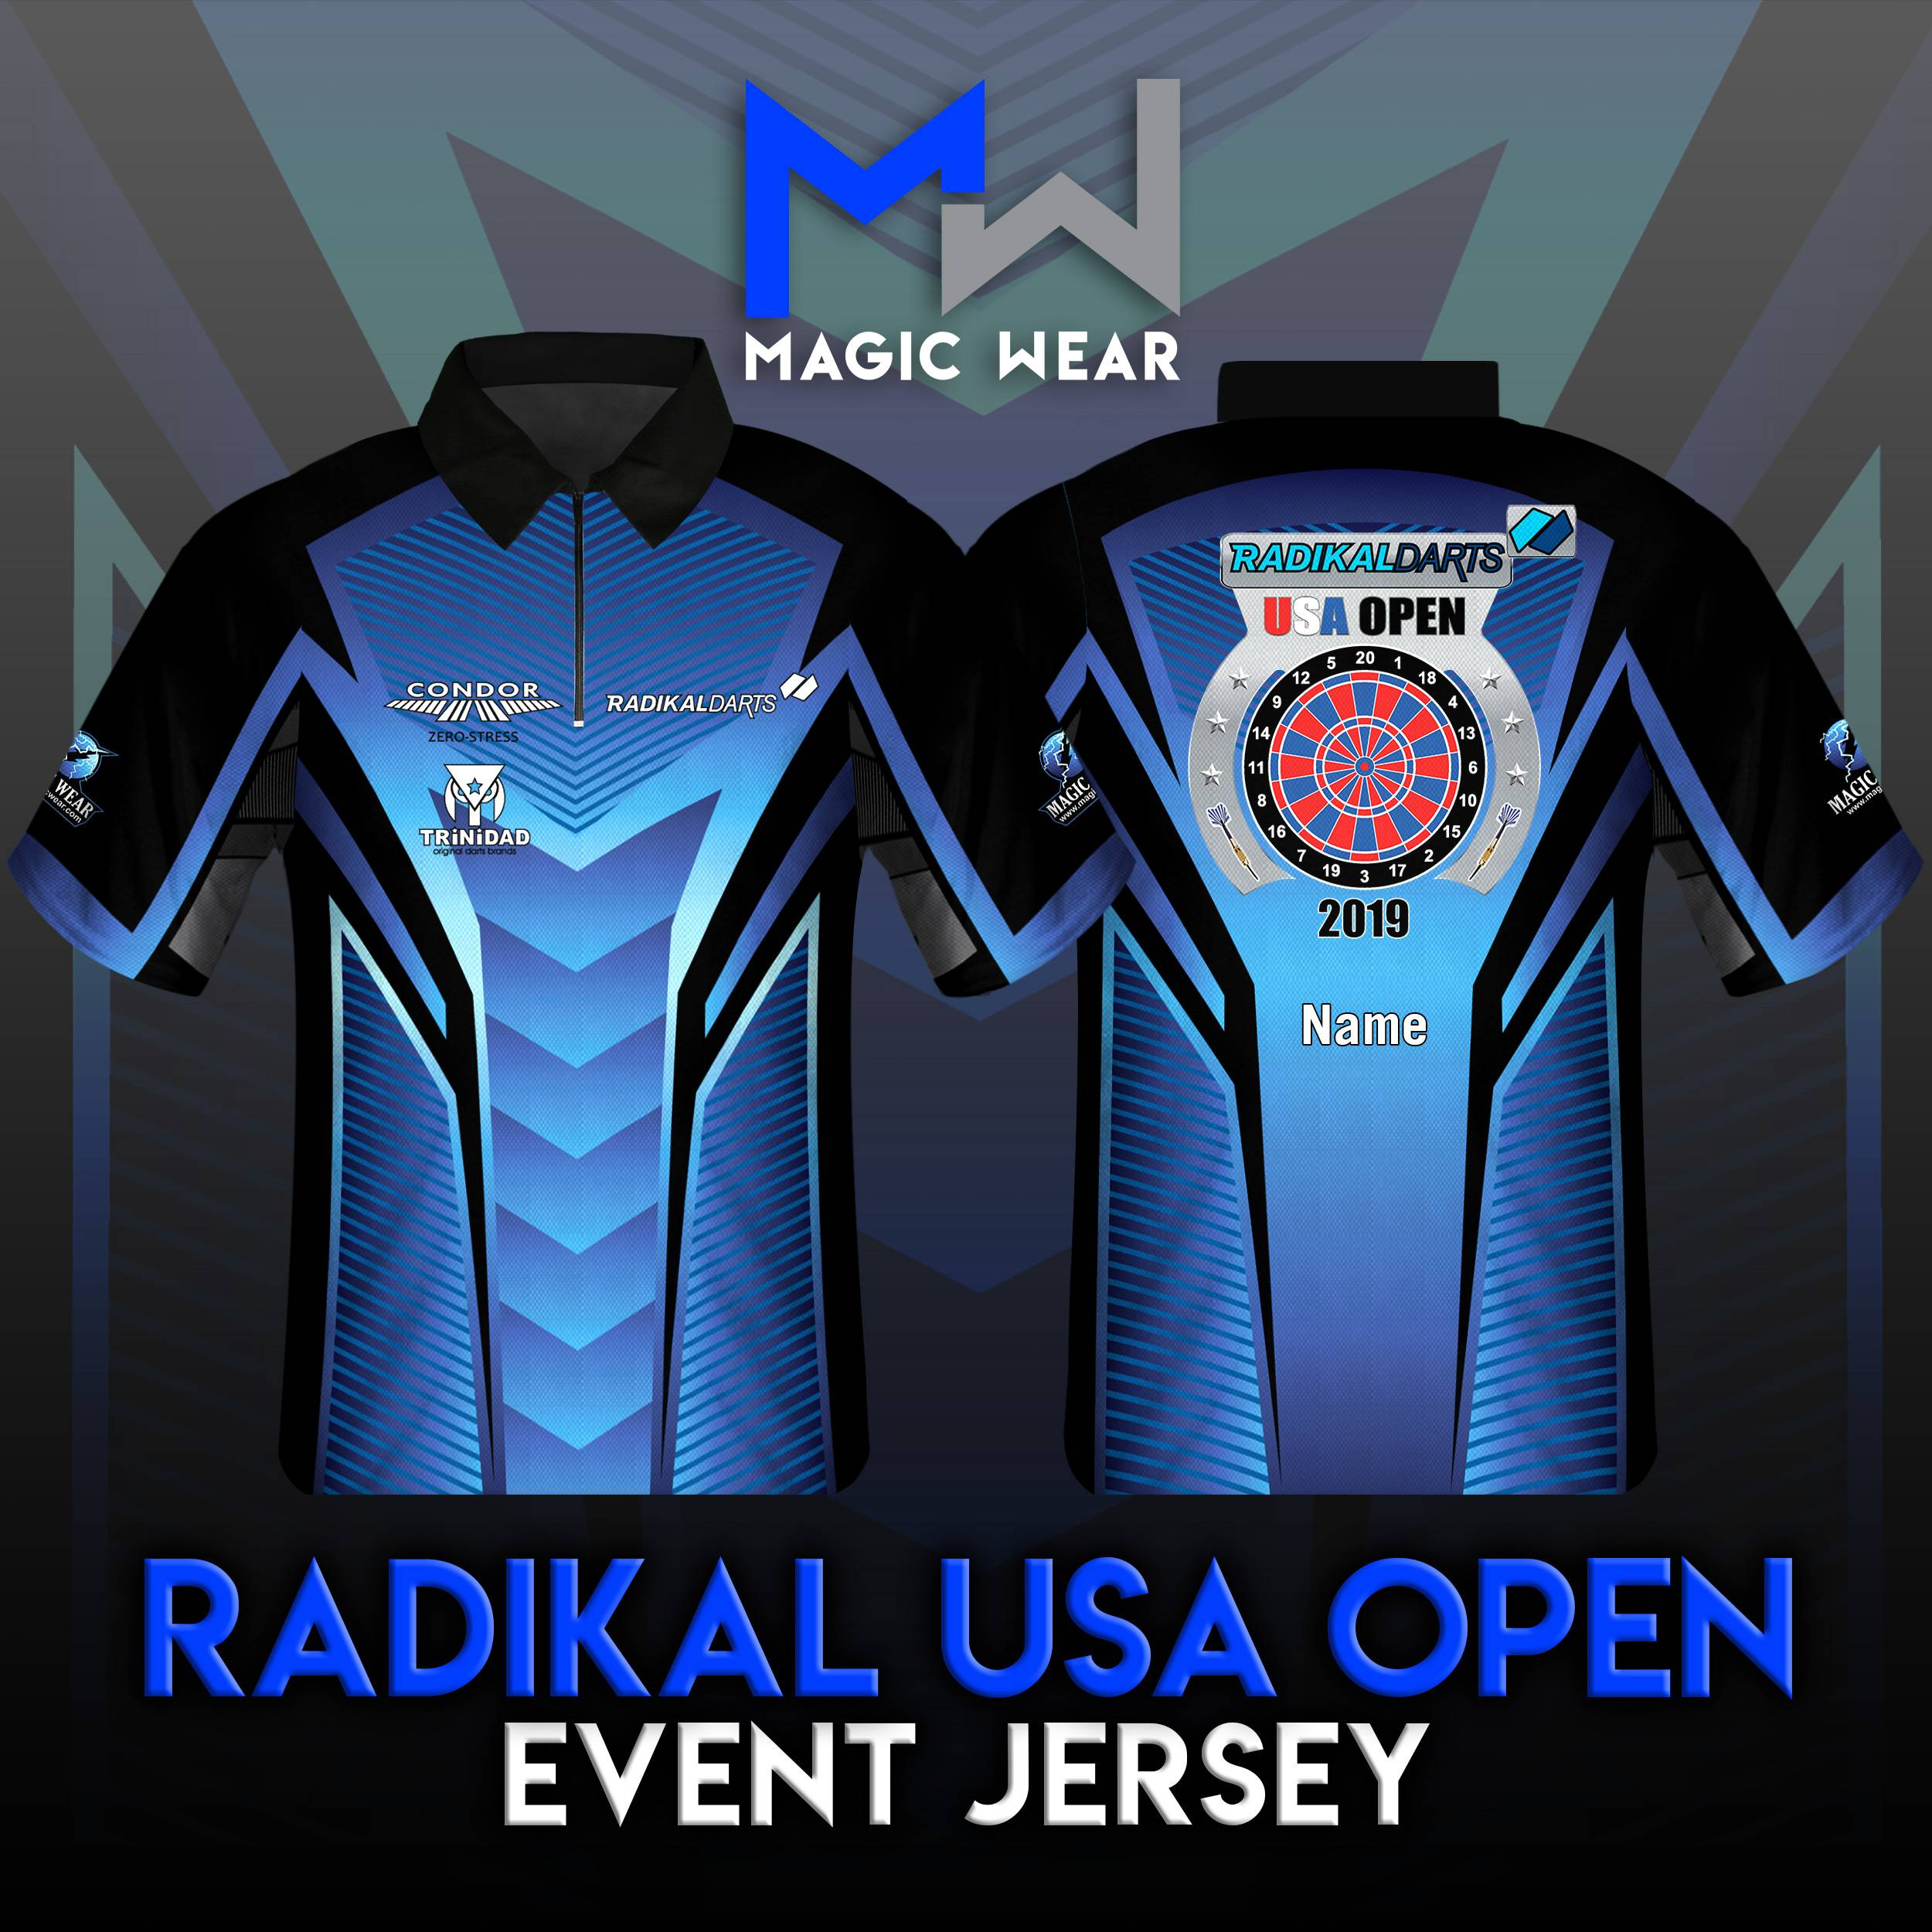 Rdusa Open 2019 - Post Event Jersey Sale! - News 50bc9be22